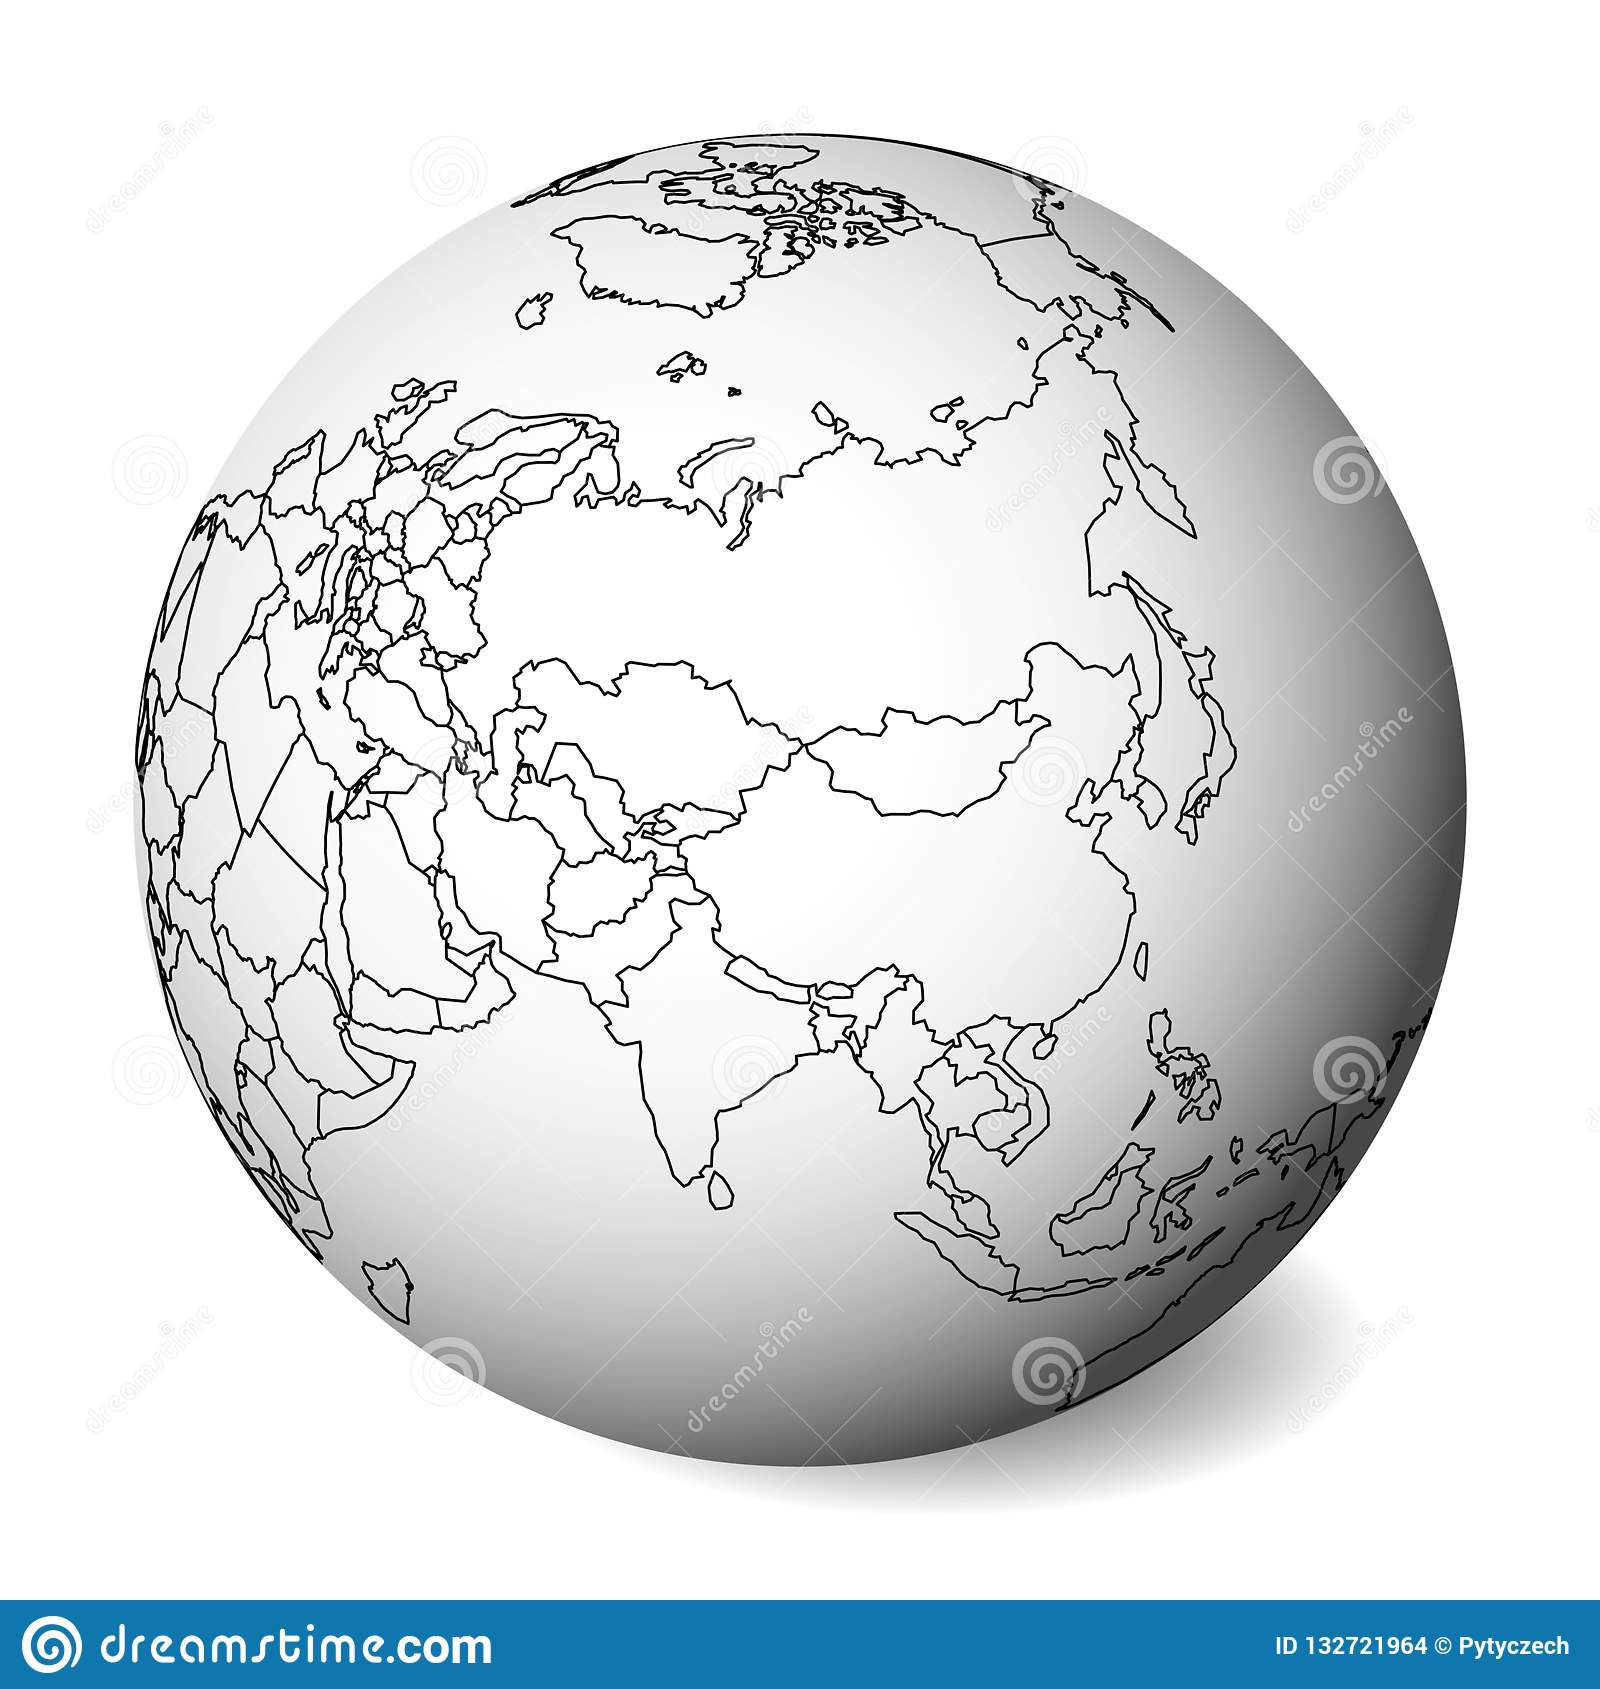 Political Outline Map Of Asia.Blank Political Map Of Asia 3d Earth Globe With Black Outline Map